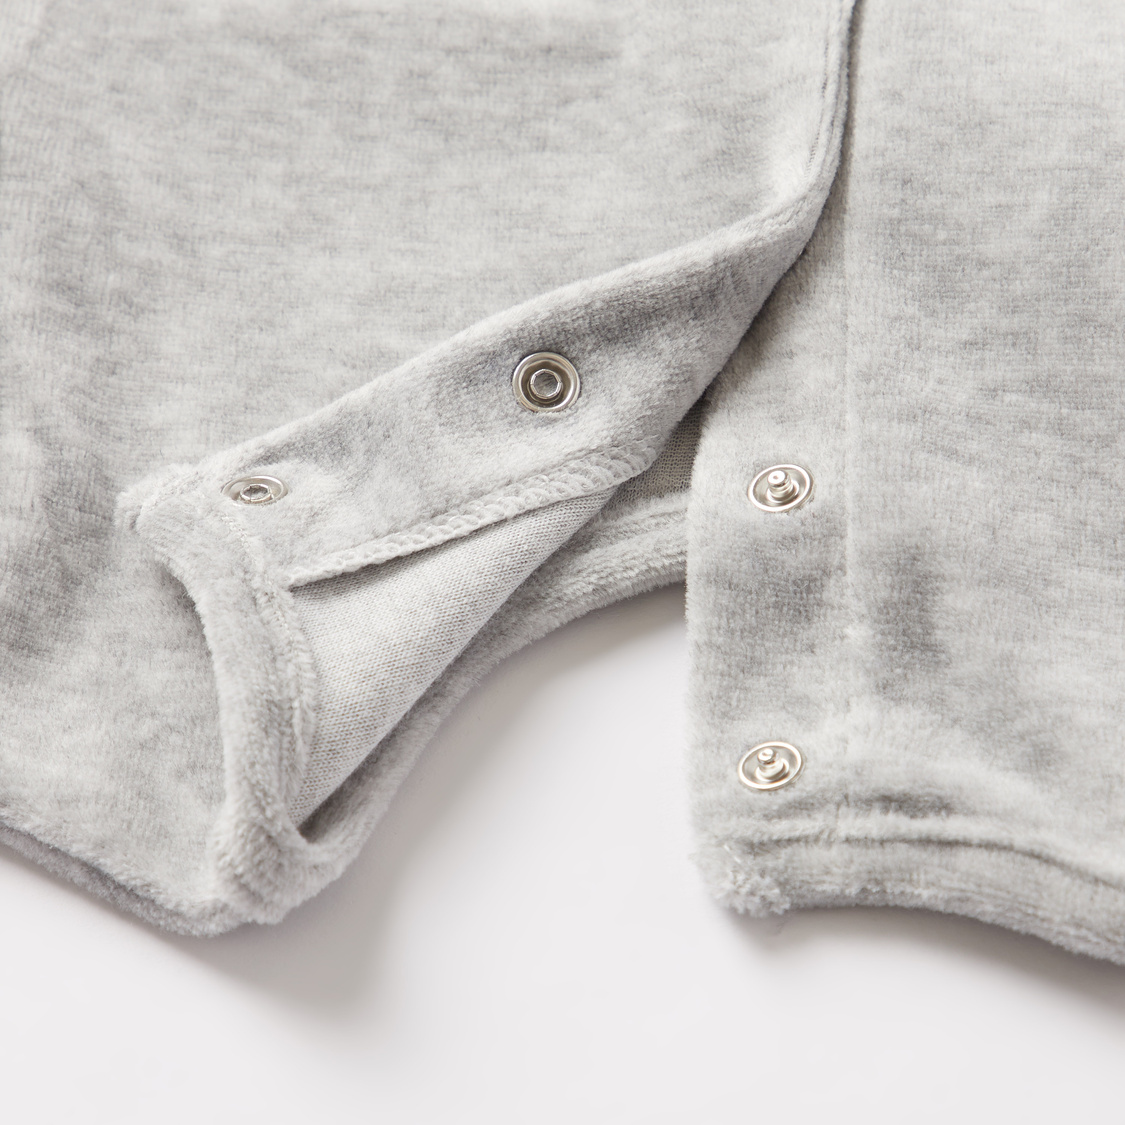 Slogan Embroidered Sleepsuit with Long Sleeves and Cap